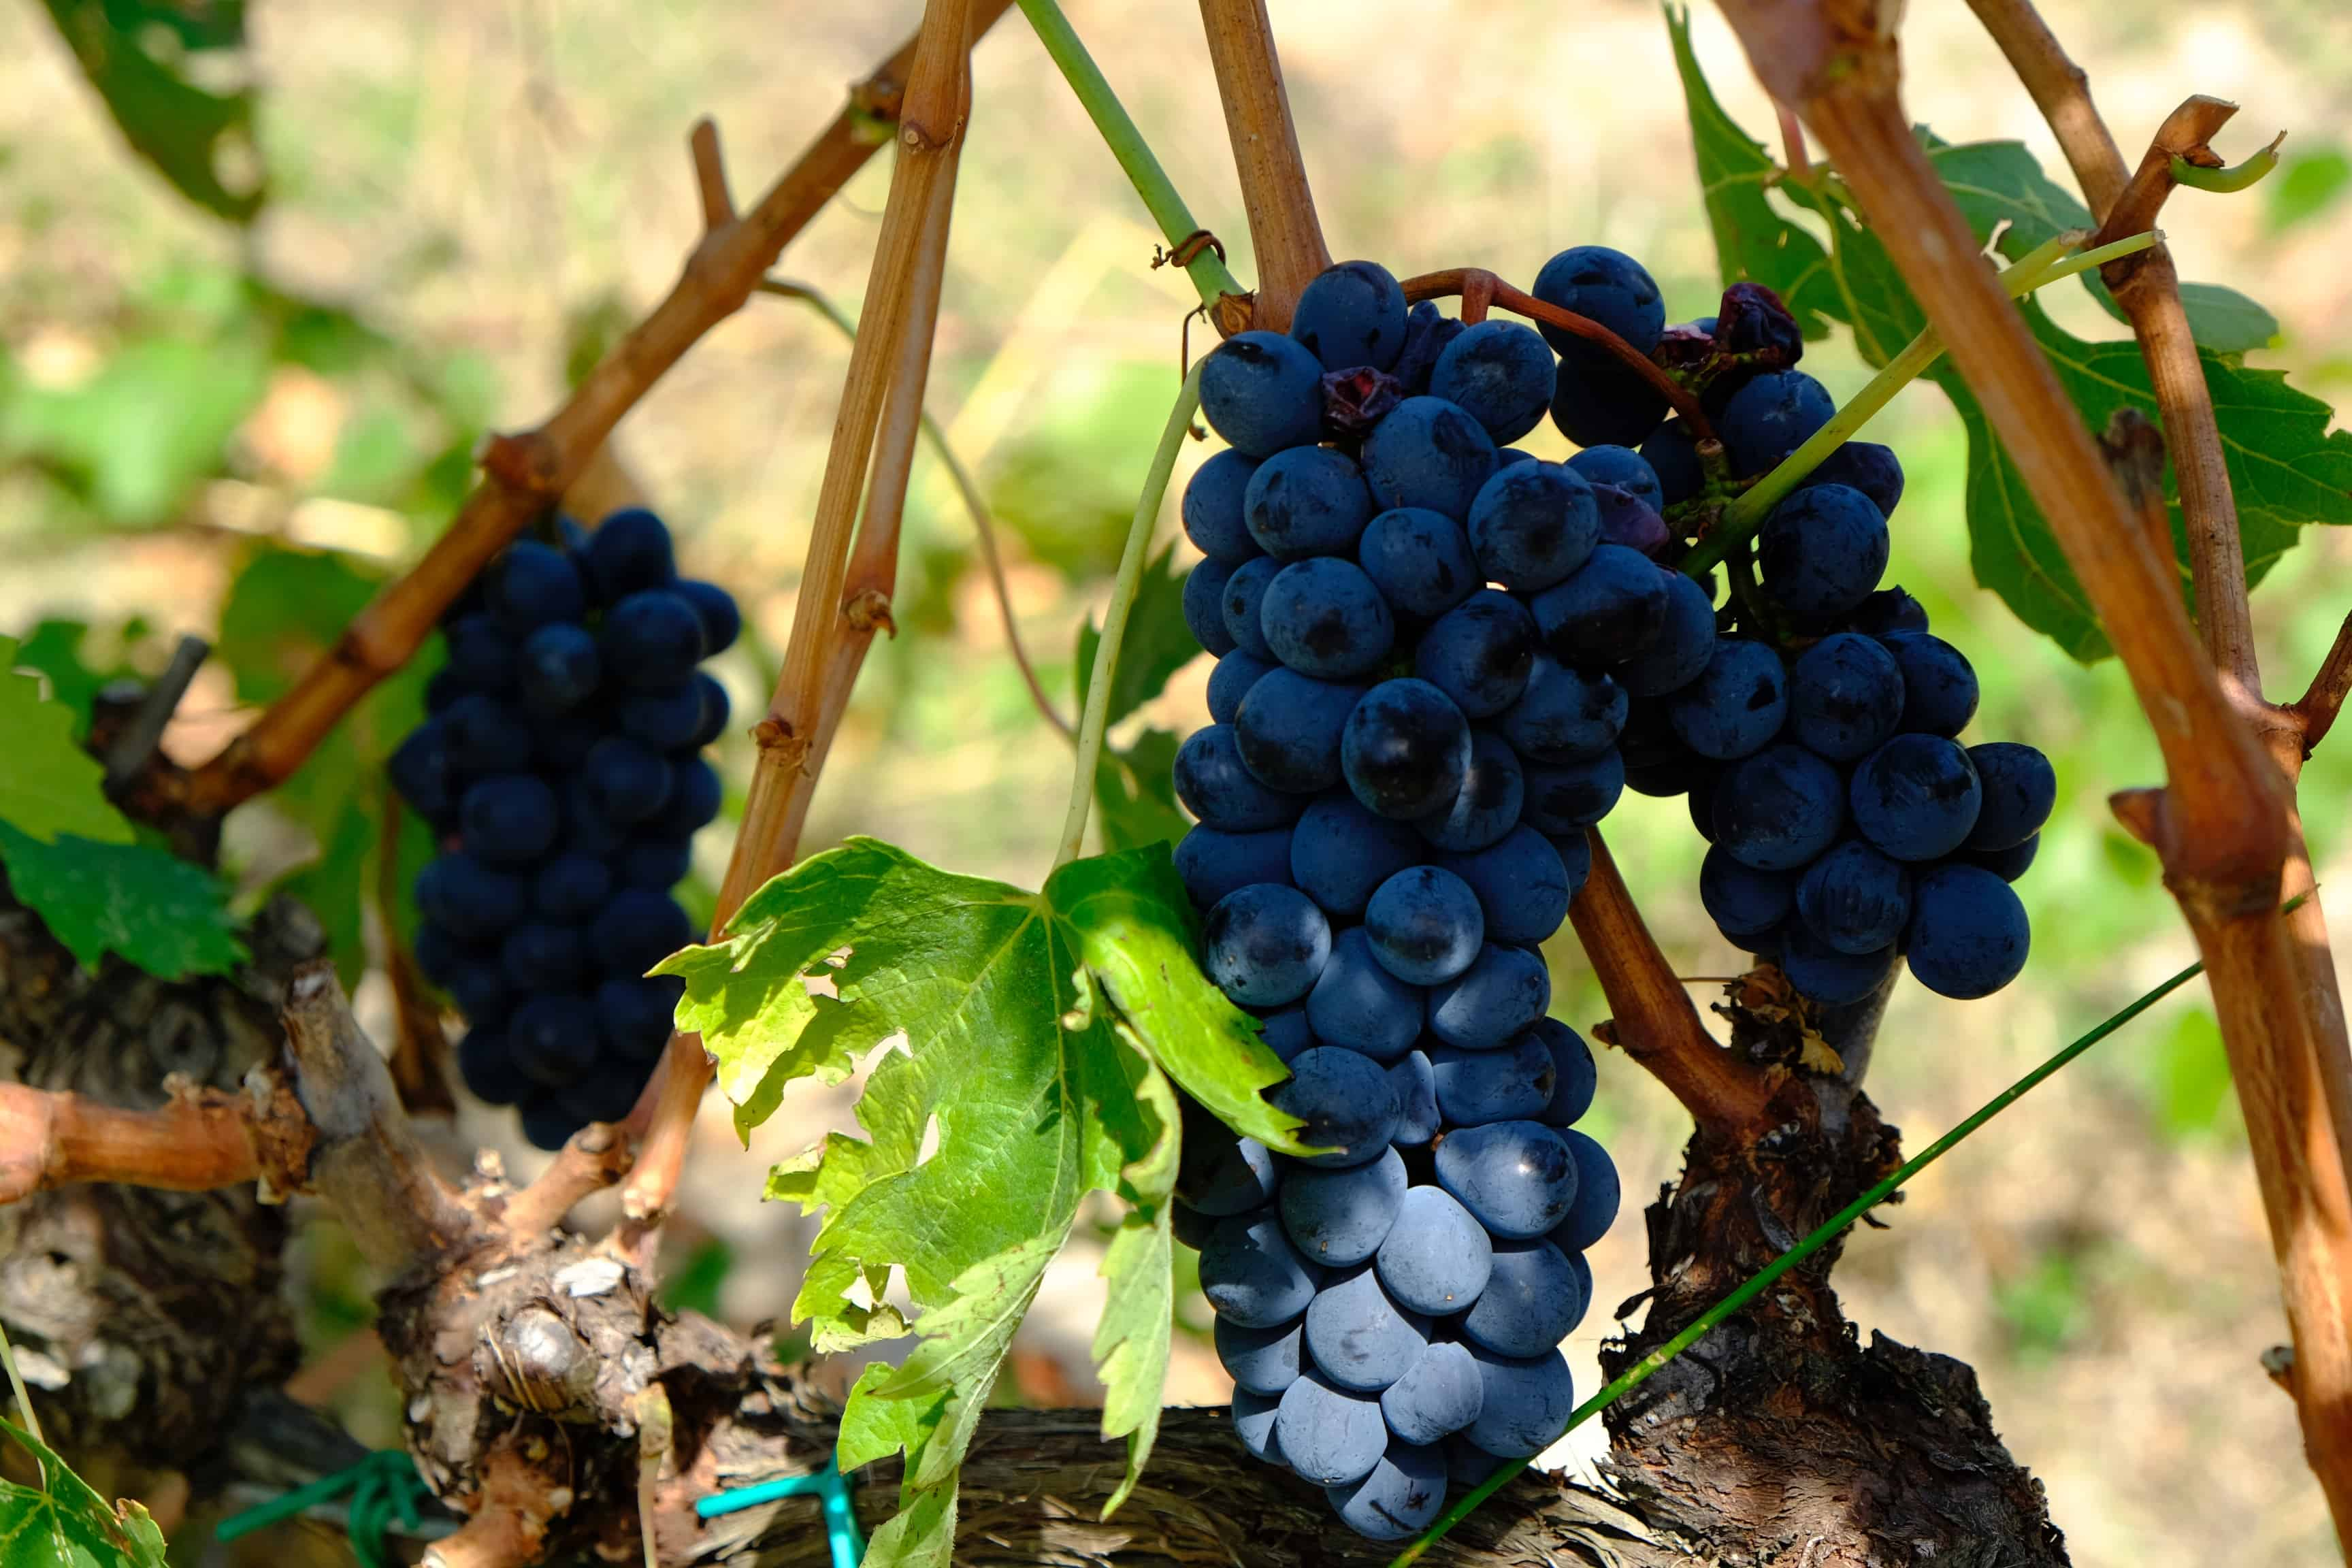 Winery - grapes on vine